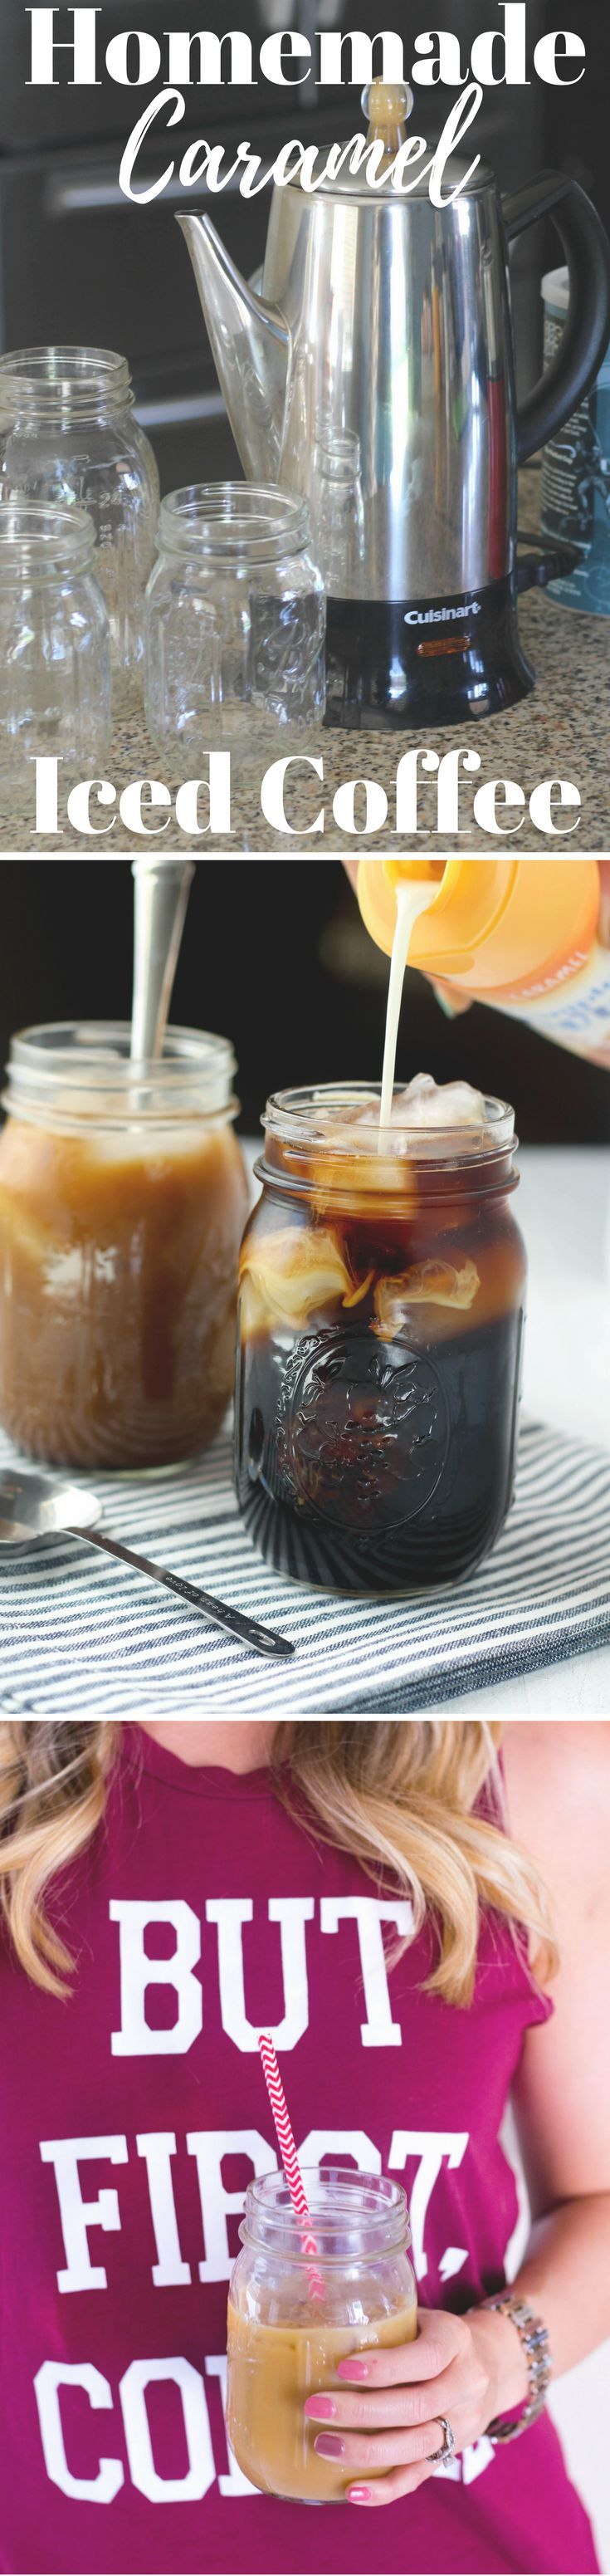 72 best Coffee Lovers images on Pinterest